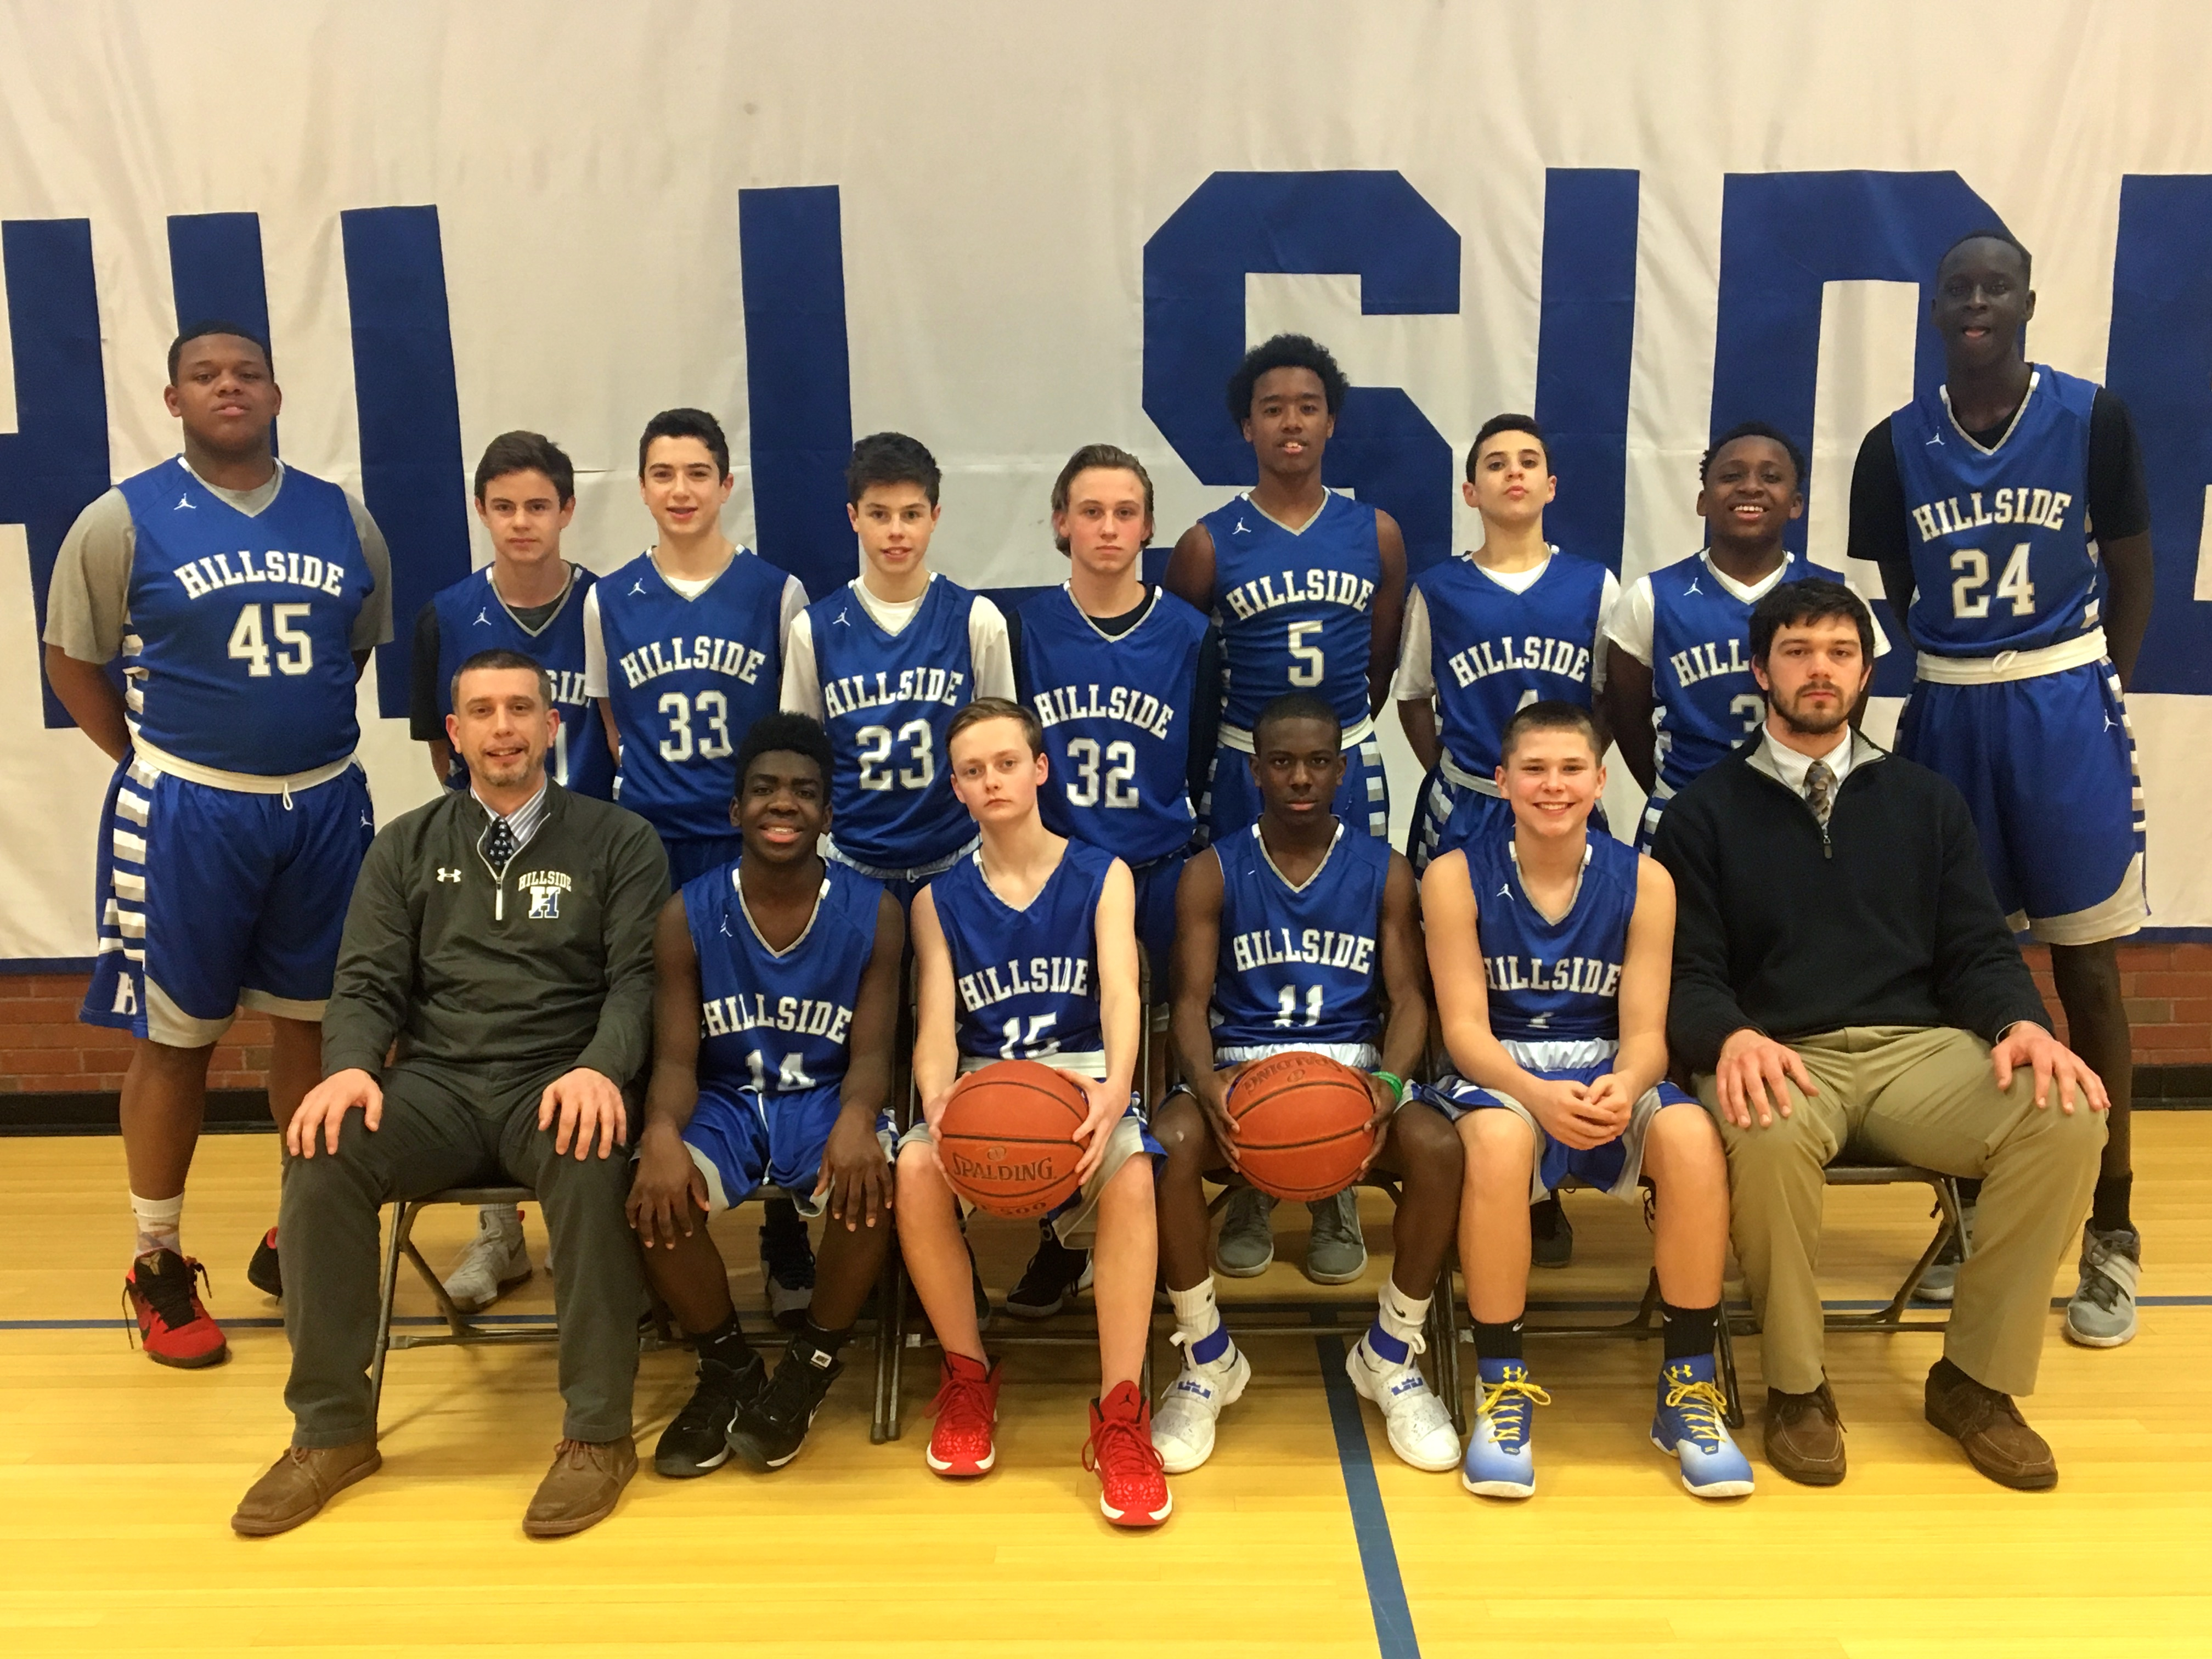 Hillside School Varsity Basketball team